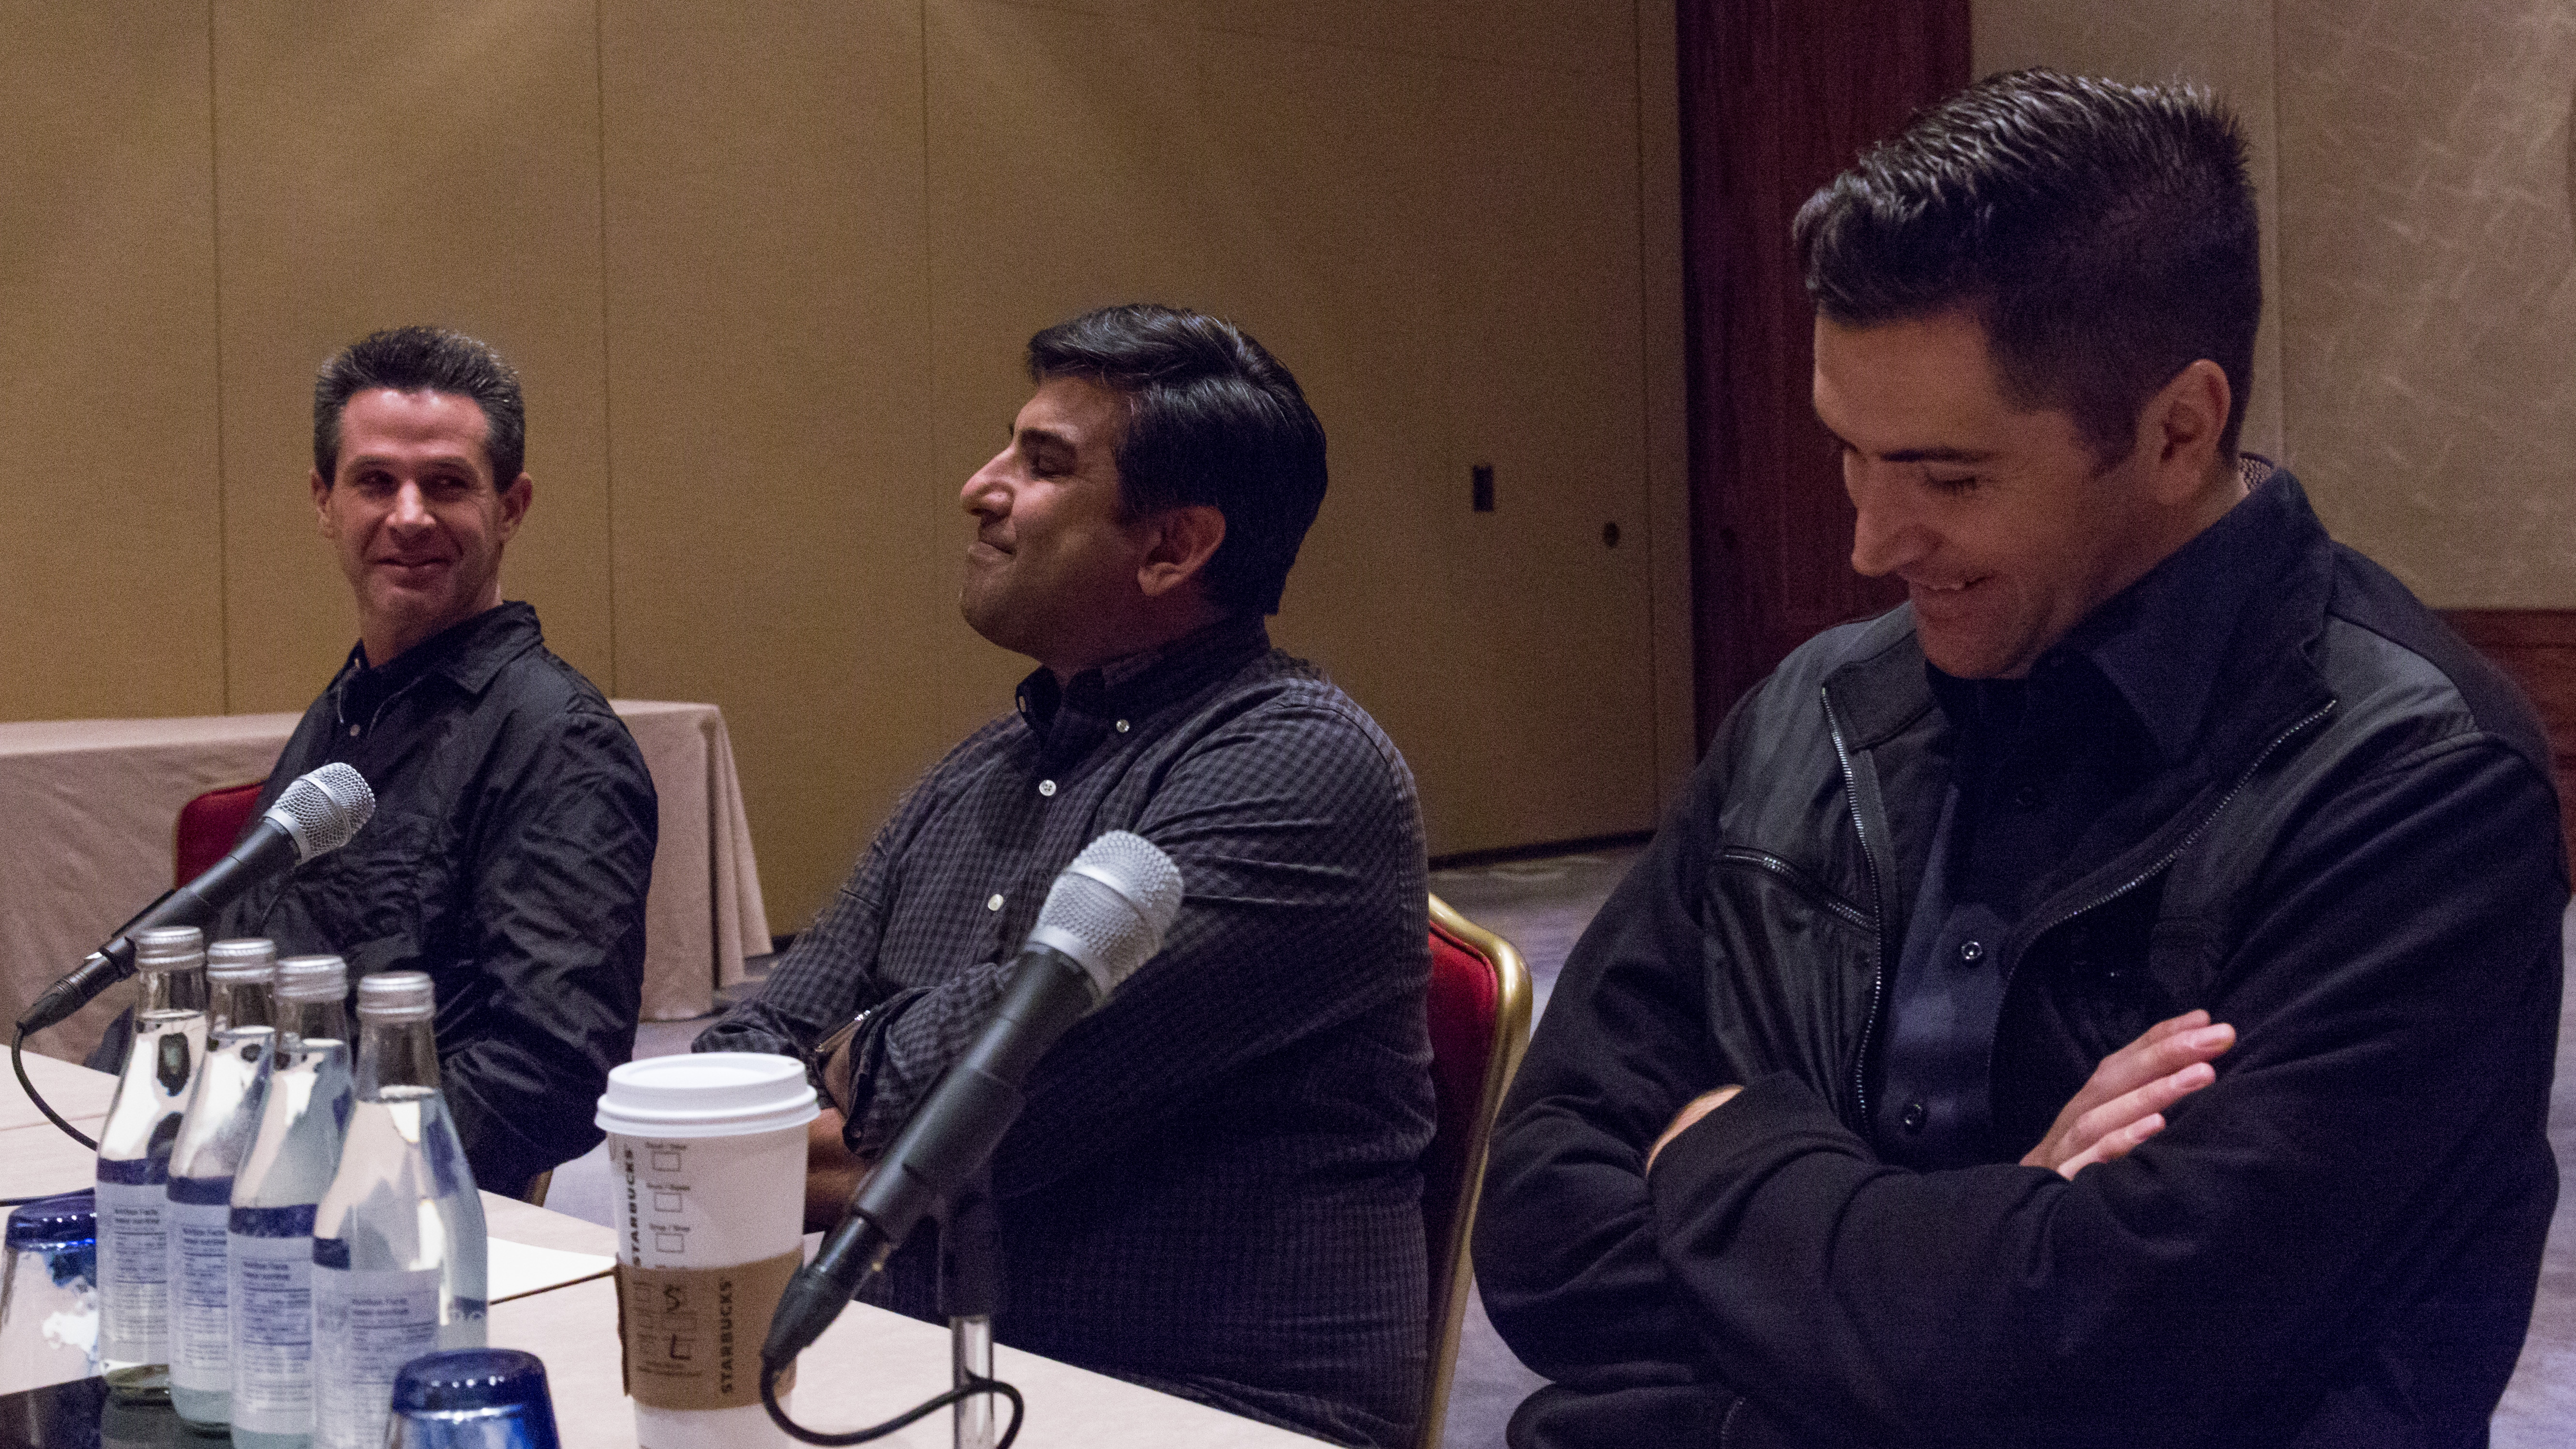 Producers Simon Kinberg (left) and Aditya Sood (center), along with screenwriter Drew Goddard (right). Drew is extremely tall.